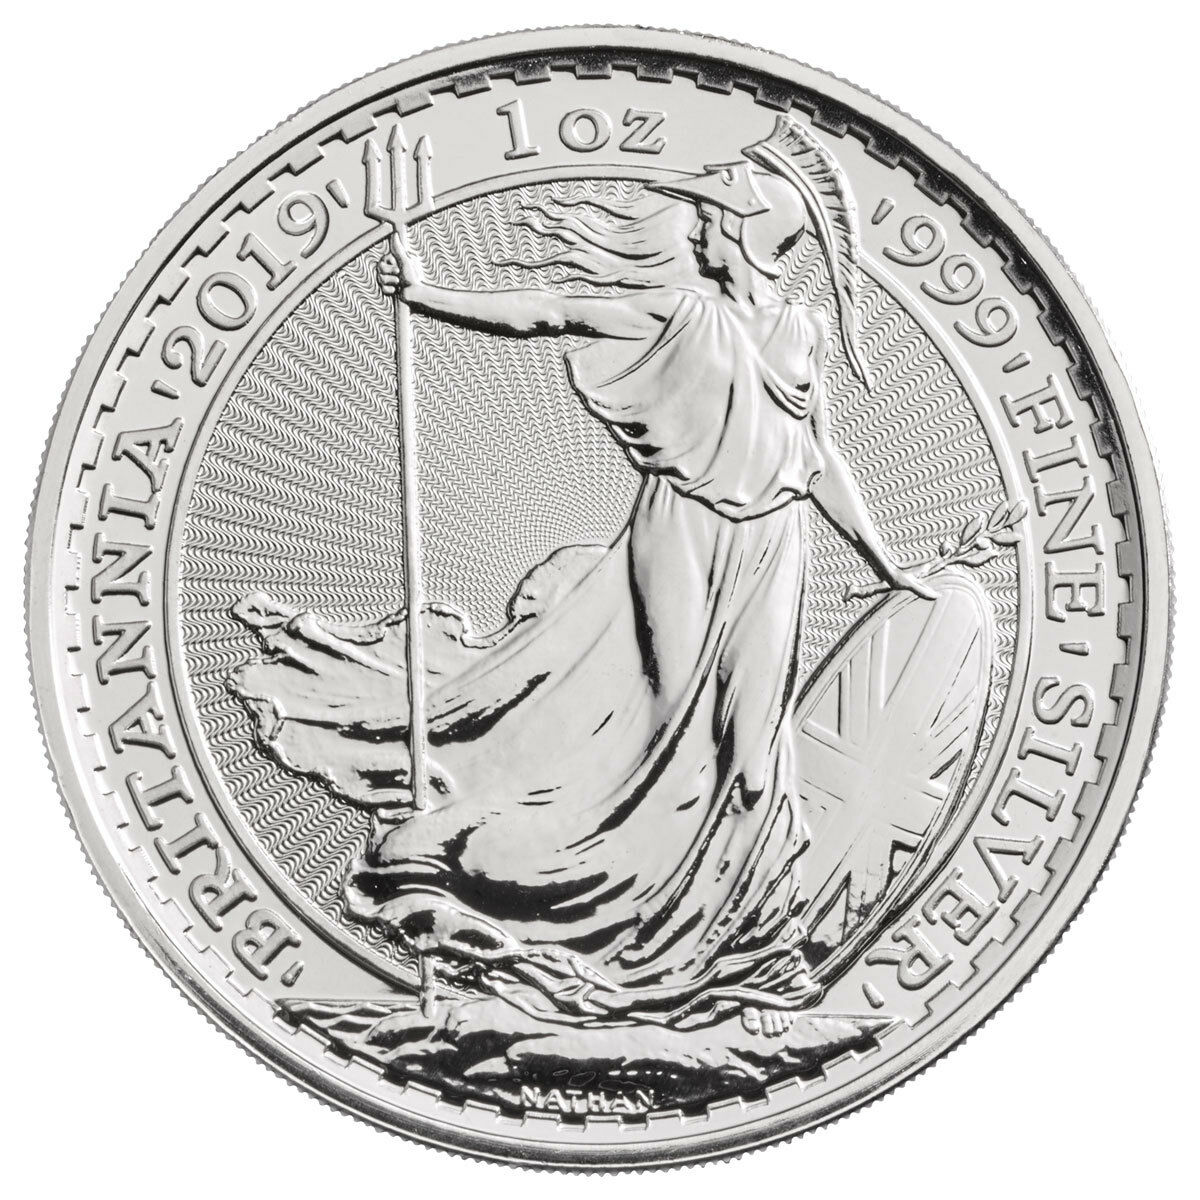 2019 Great Britain 1 oz. Silver Britannia £2 Coin GEM BU SKU55555